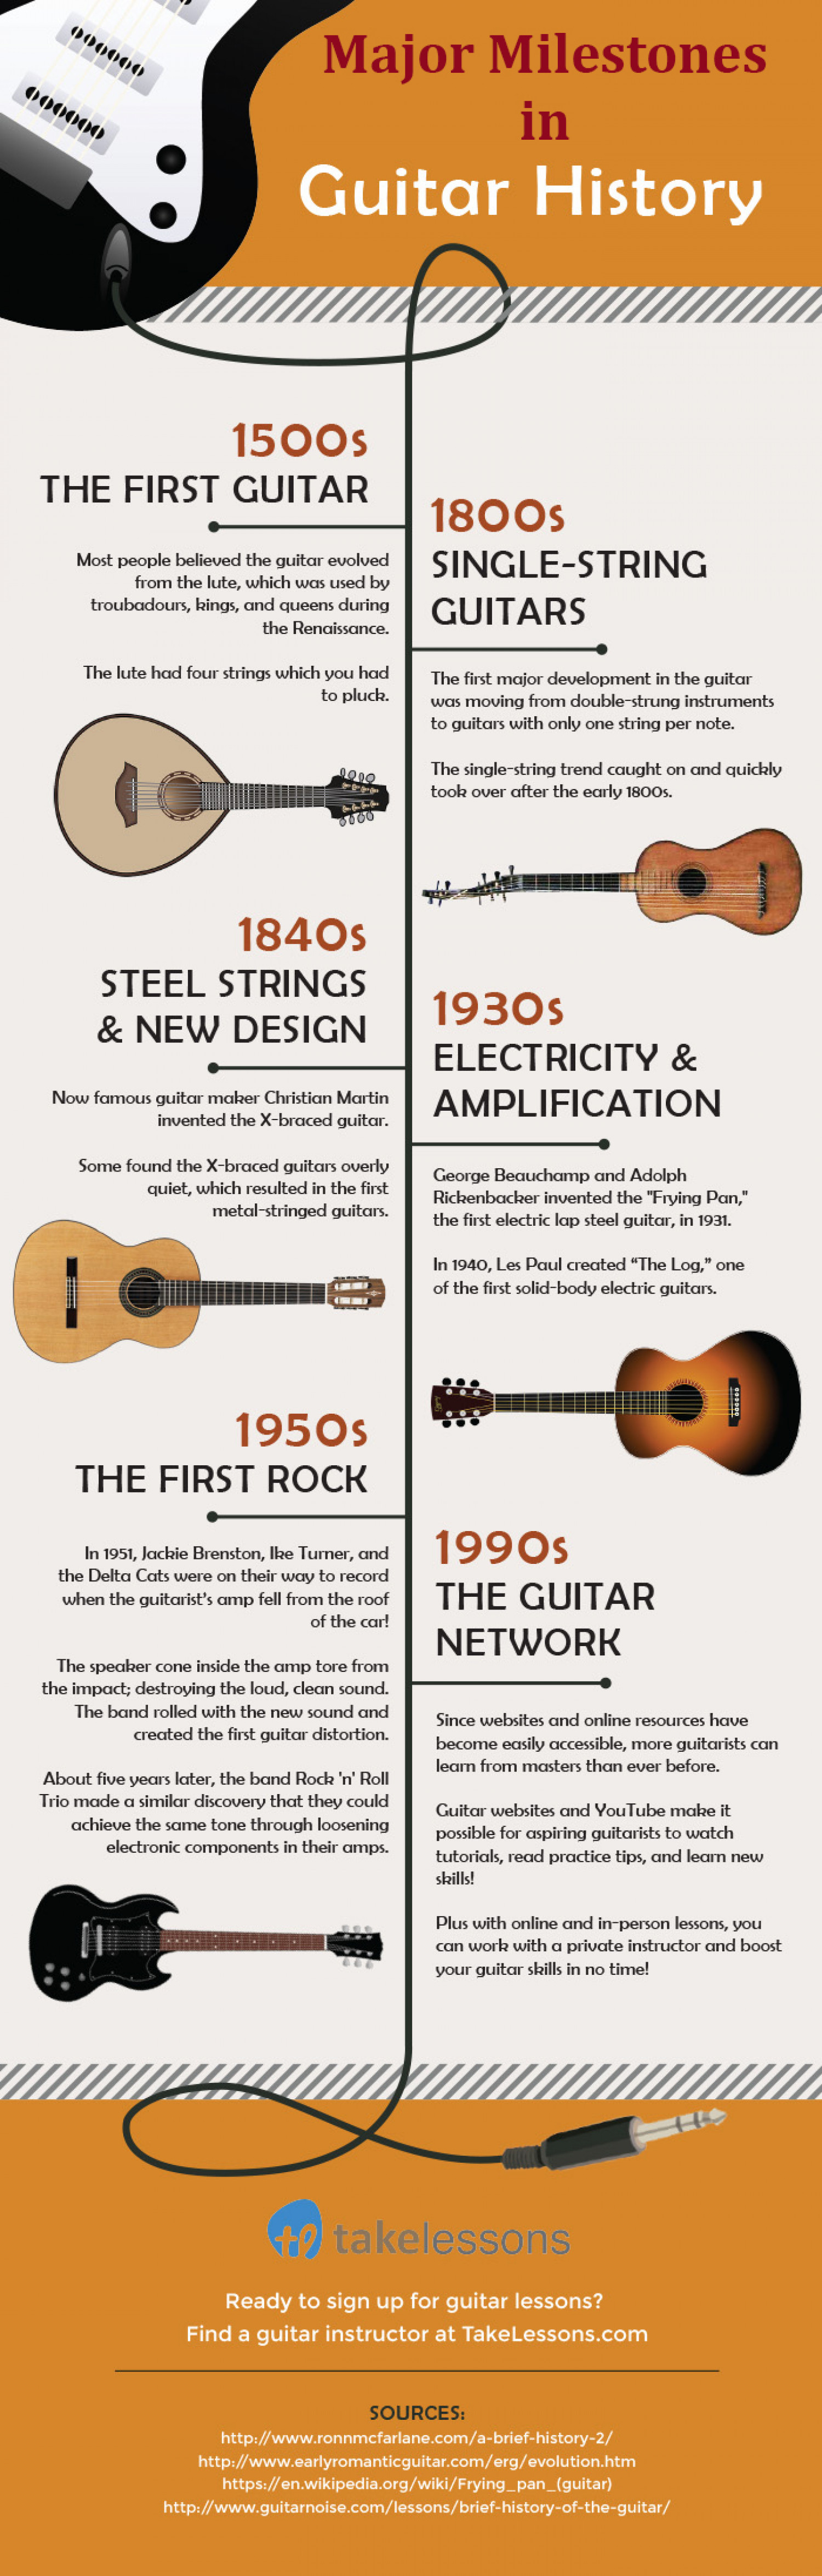 A Look Back: Major Milestones in Guitar History Infographic